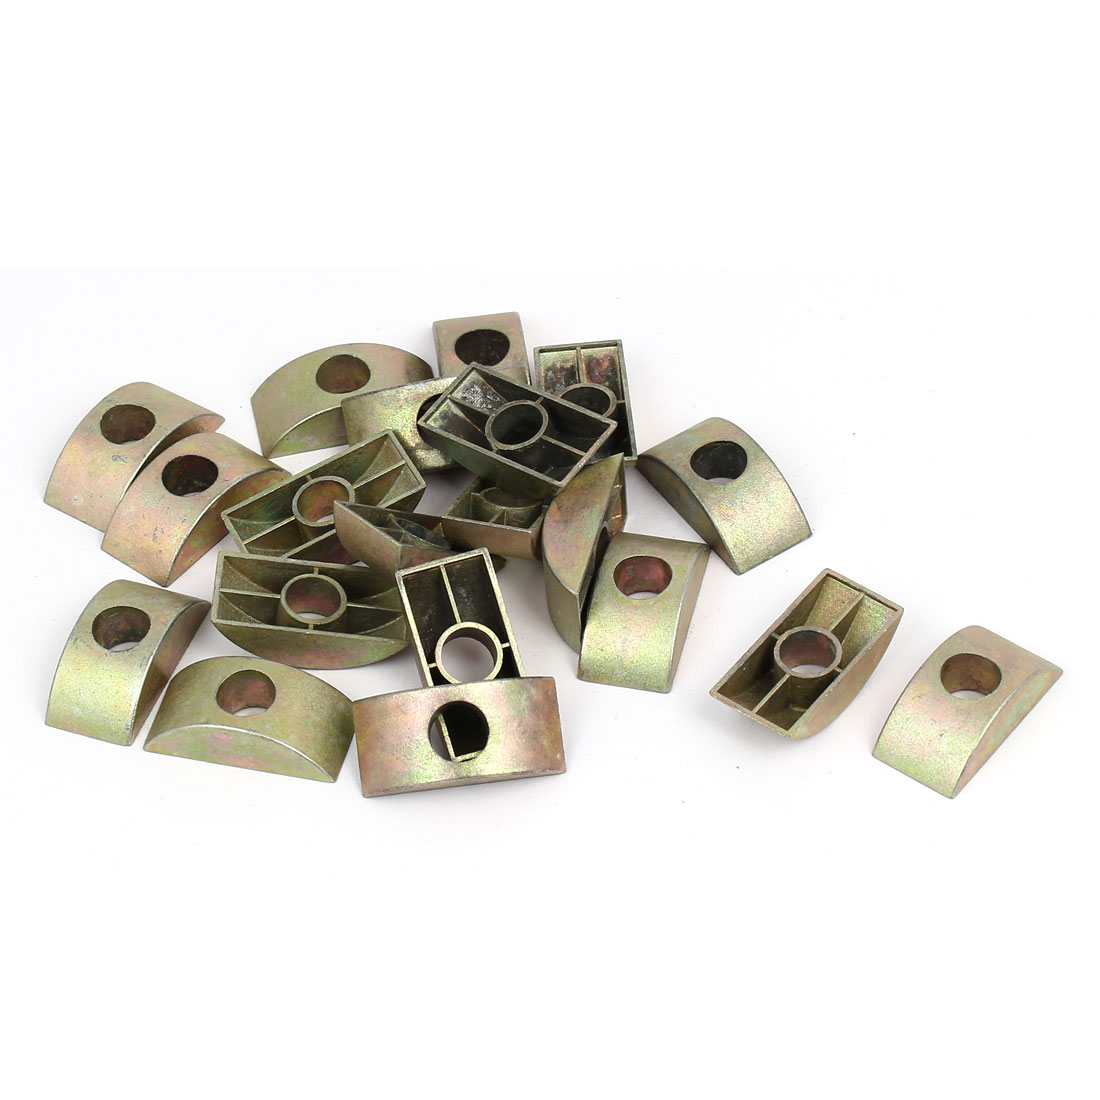 8mm Hole Dia Furniture Connector Half Moon Nuts Spacer Washer Bronze Tone 20PCS